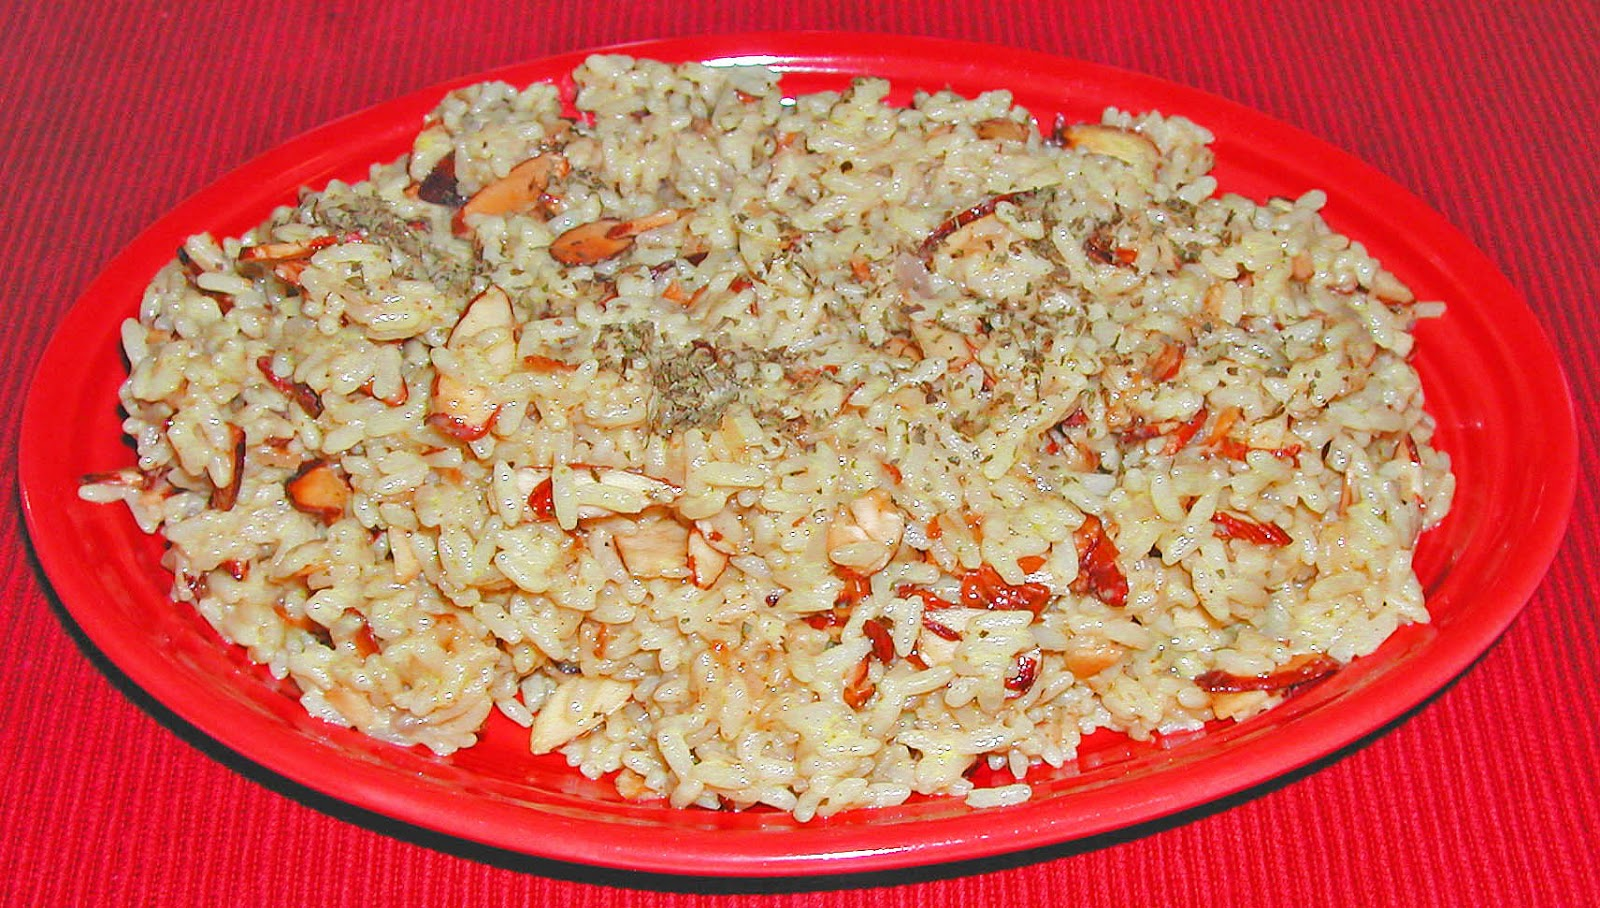 I cooked pilaf. The rice turned a little dry, how do you cook the pilaf and how many minutes do you cook